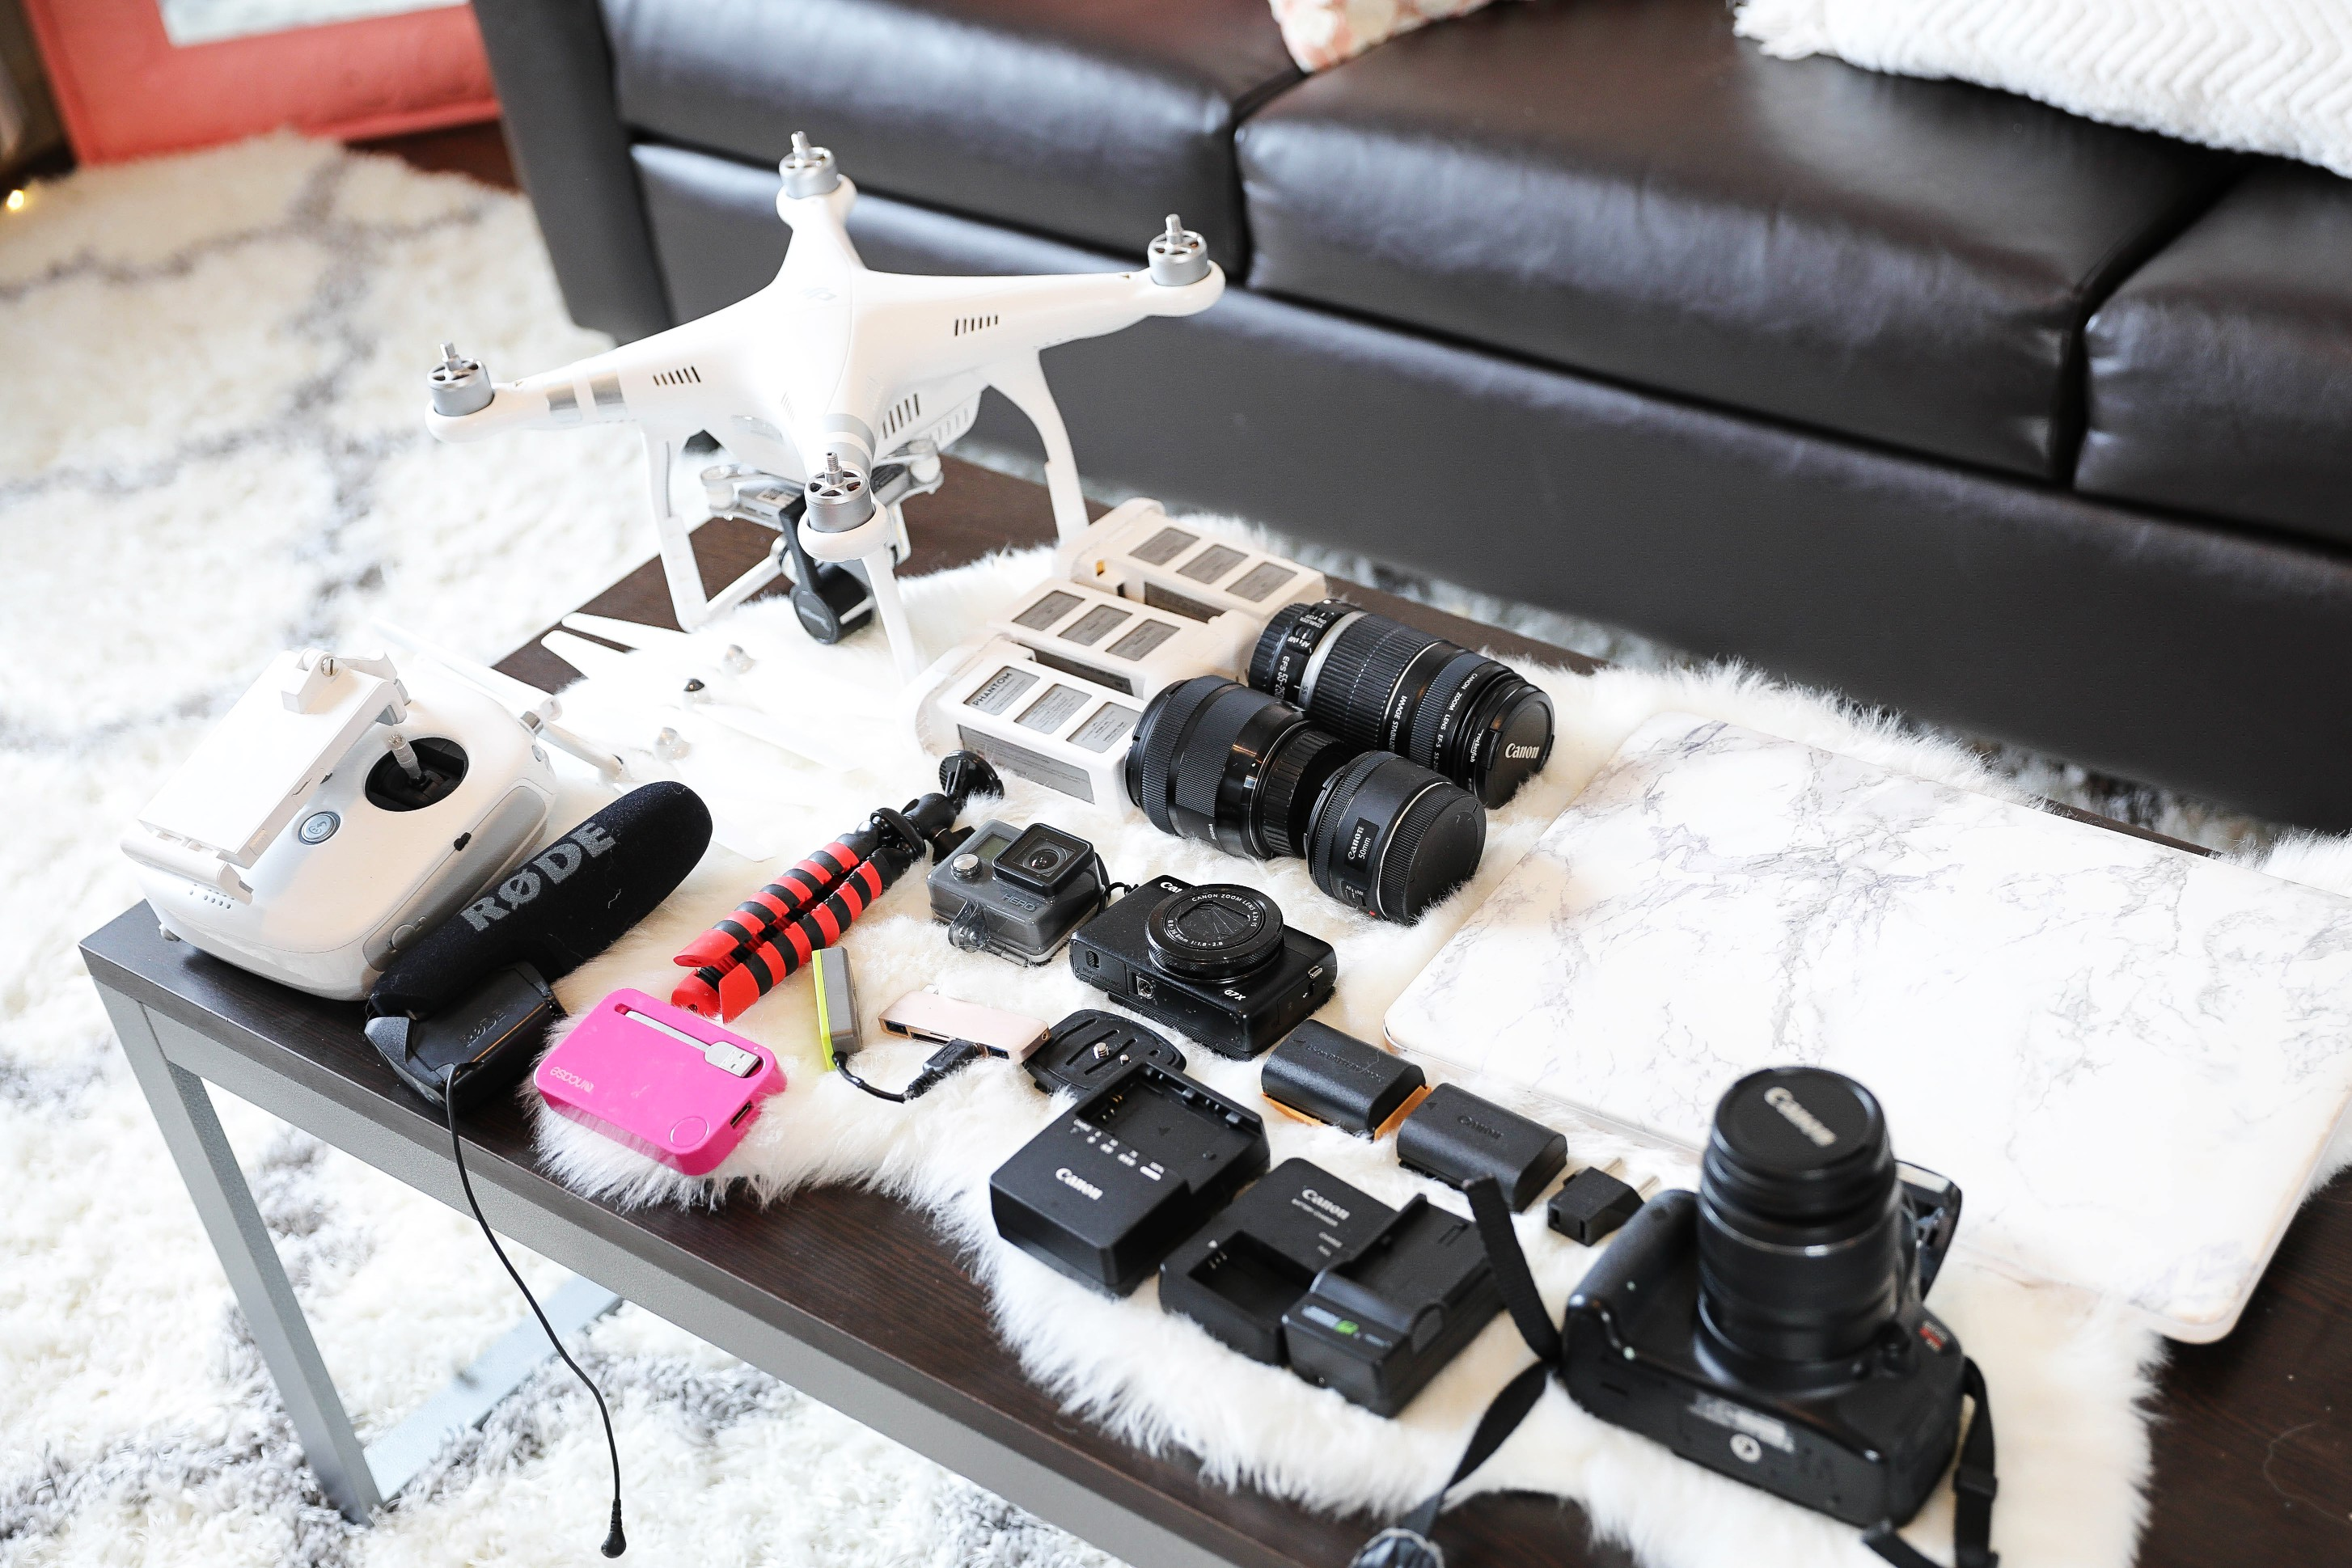 What's In My Camera Bag! As a blogger, one of the most important parts of creating contents is beautiful photos and videos! I love researching camera gear and I have collected quite a bit. Canon 5D Mark IV and accessories! By Lauren Lindmark on dailydoseofcharm.com daily dose of charm